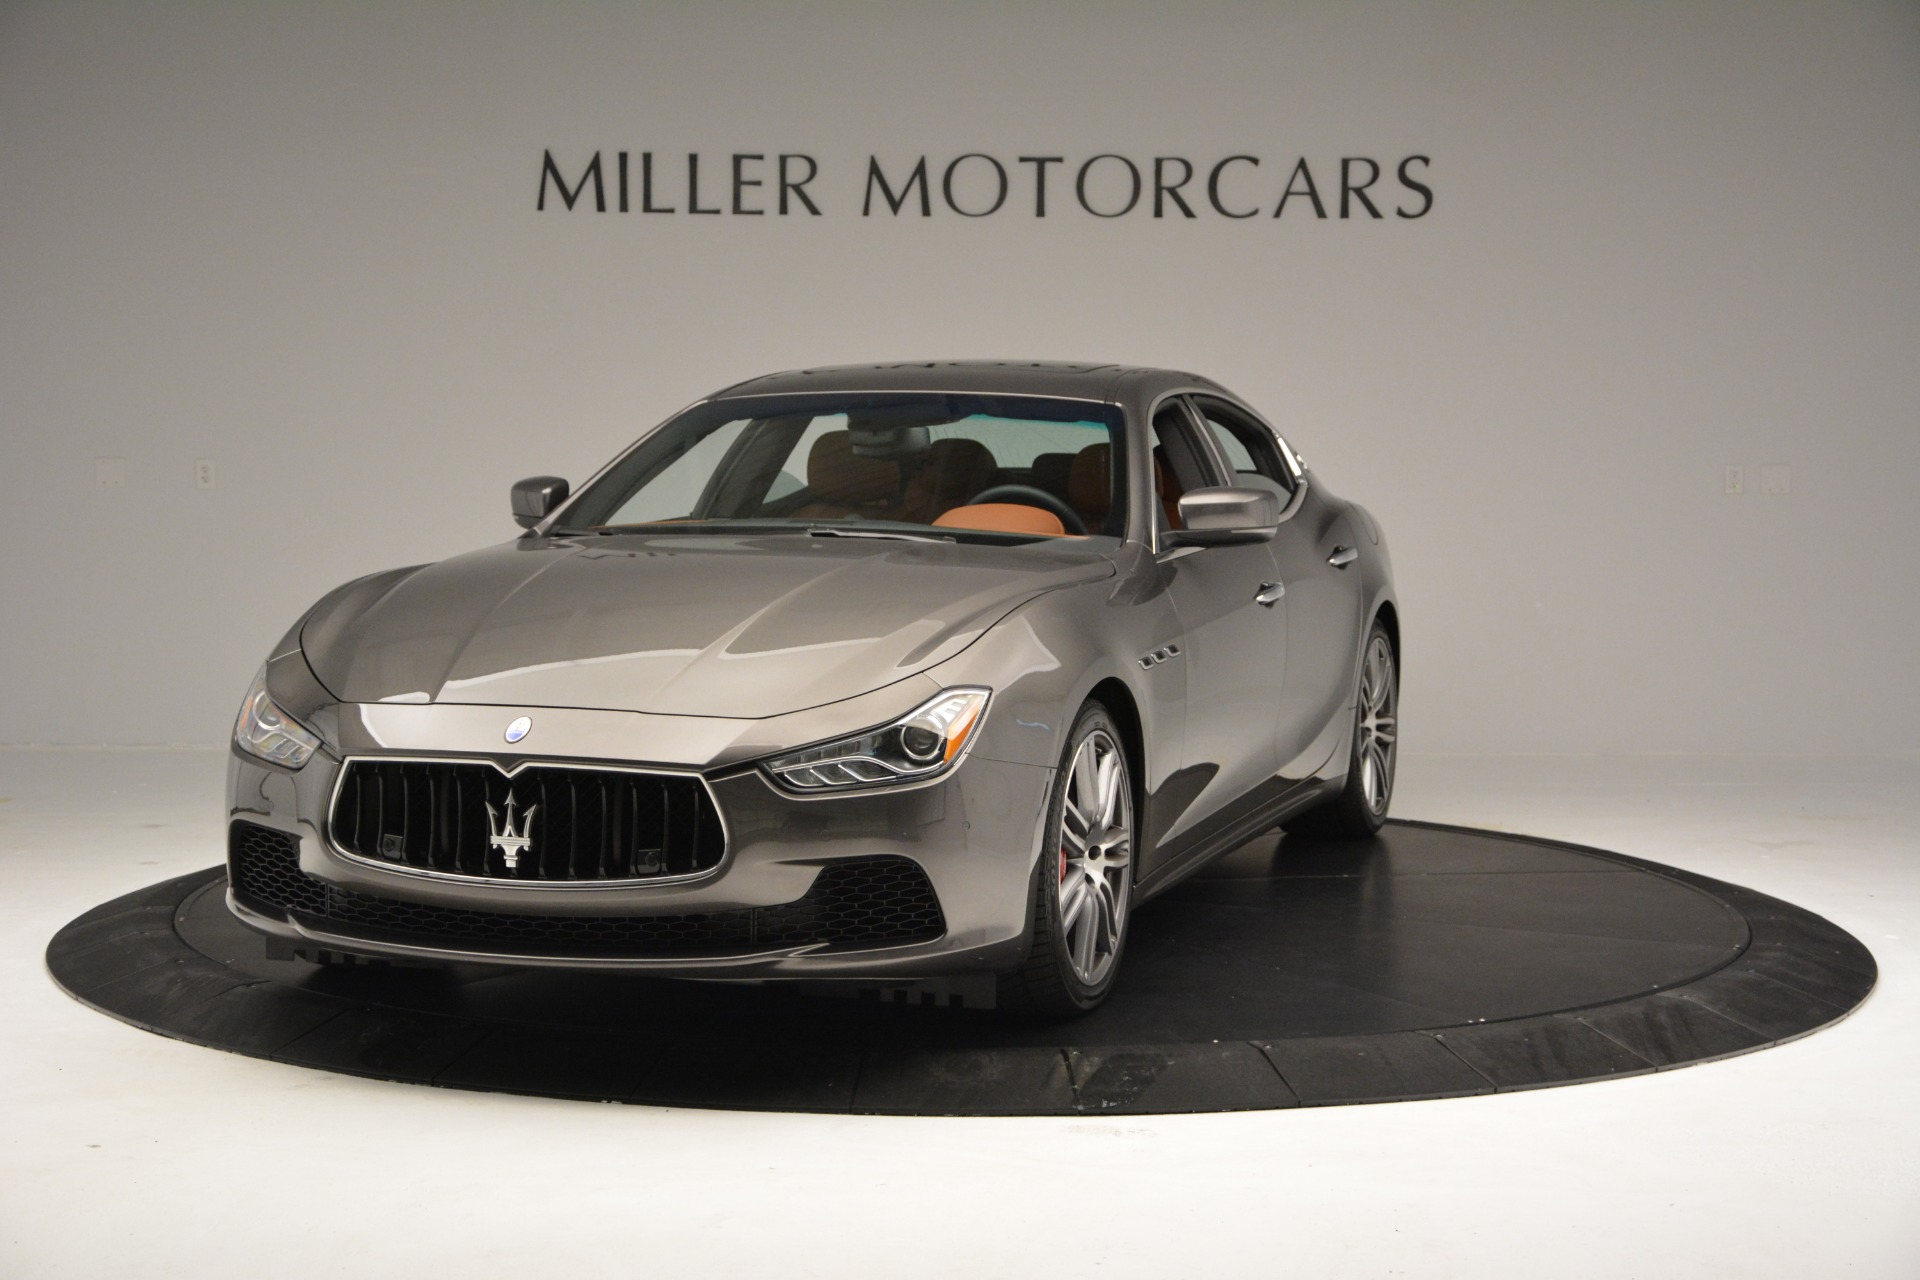 New 2017 Maserati Ghibli S Q4 For Sale In Greenwich, CT 935_main